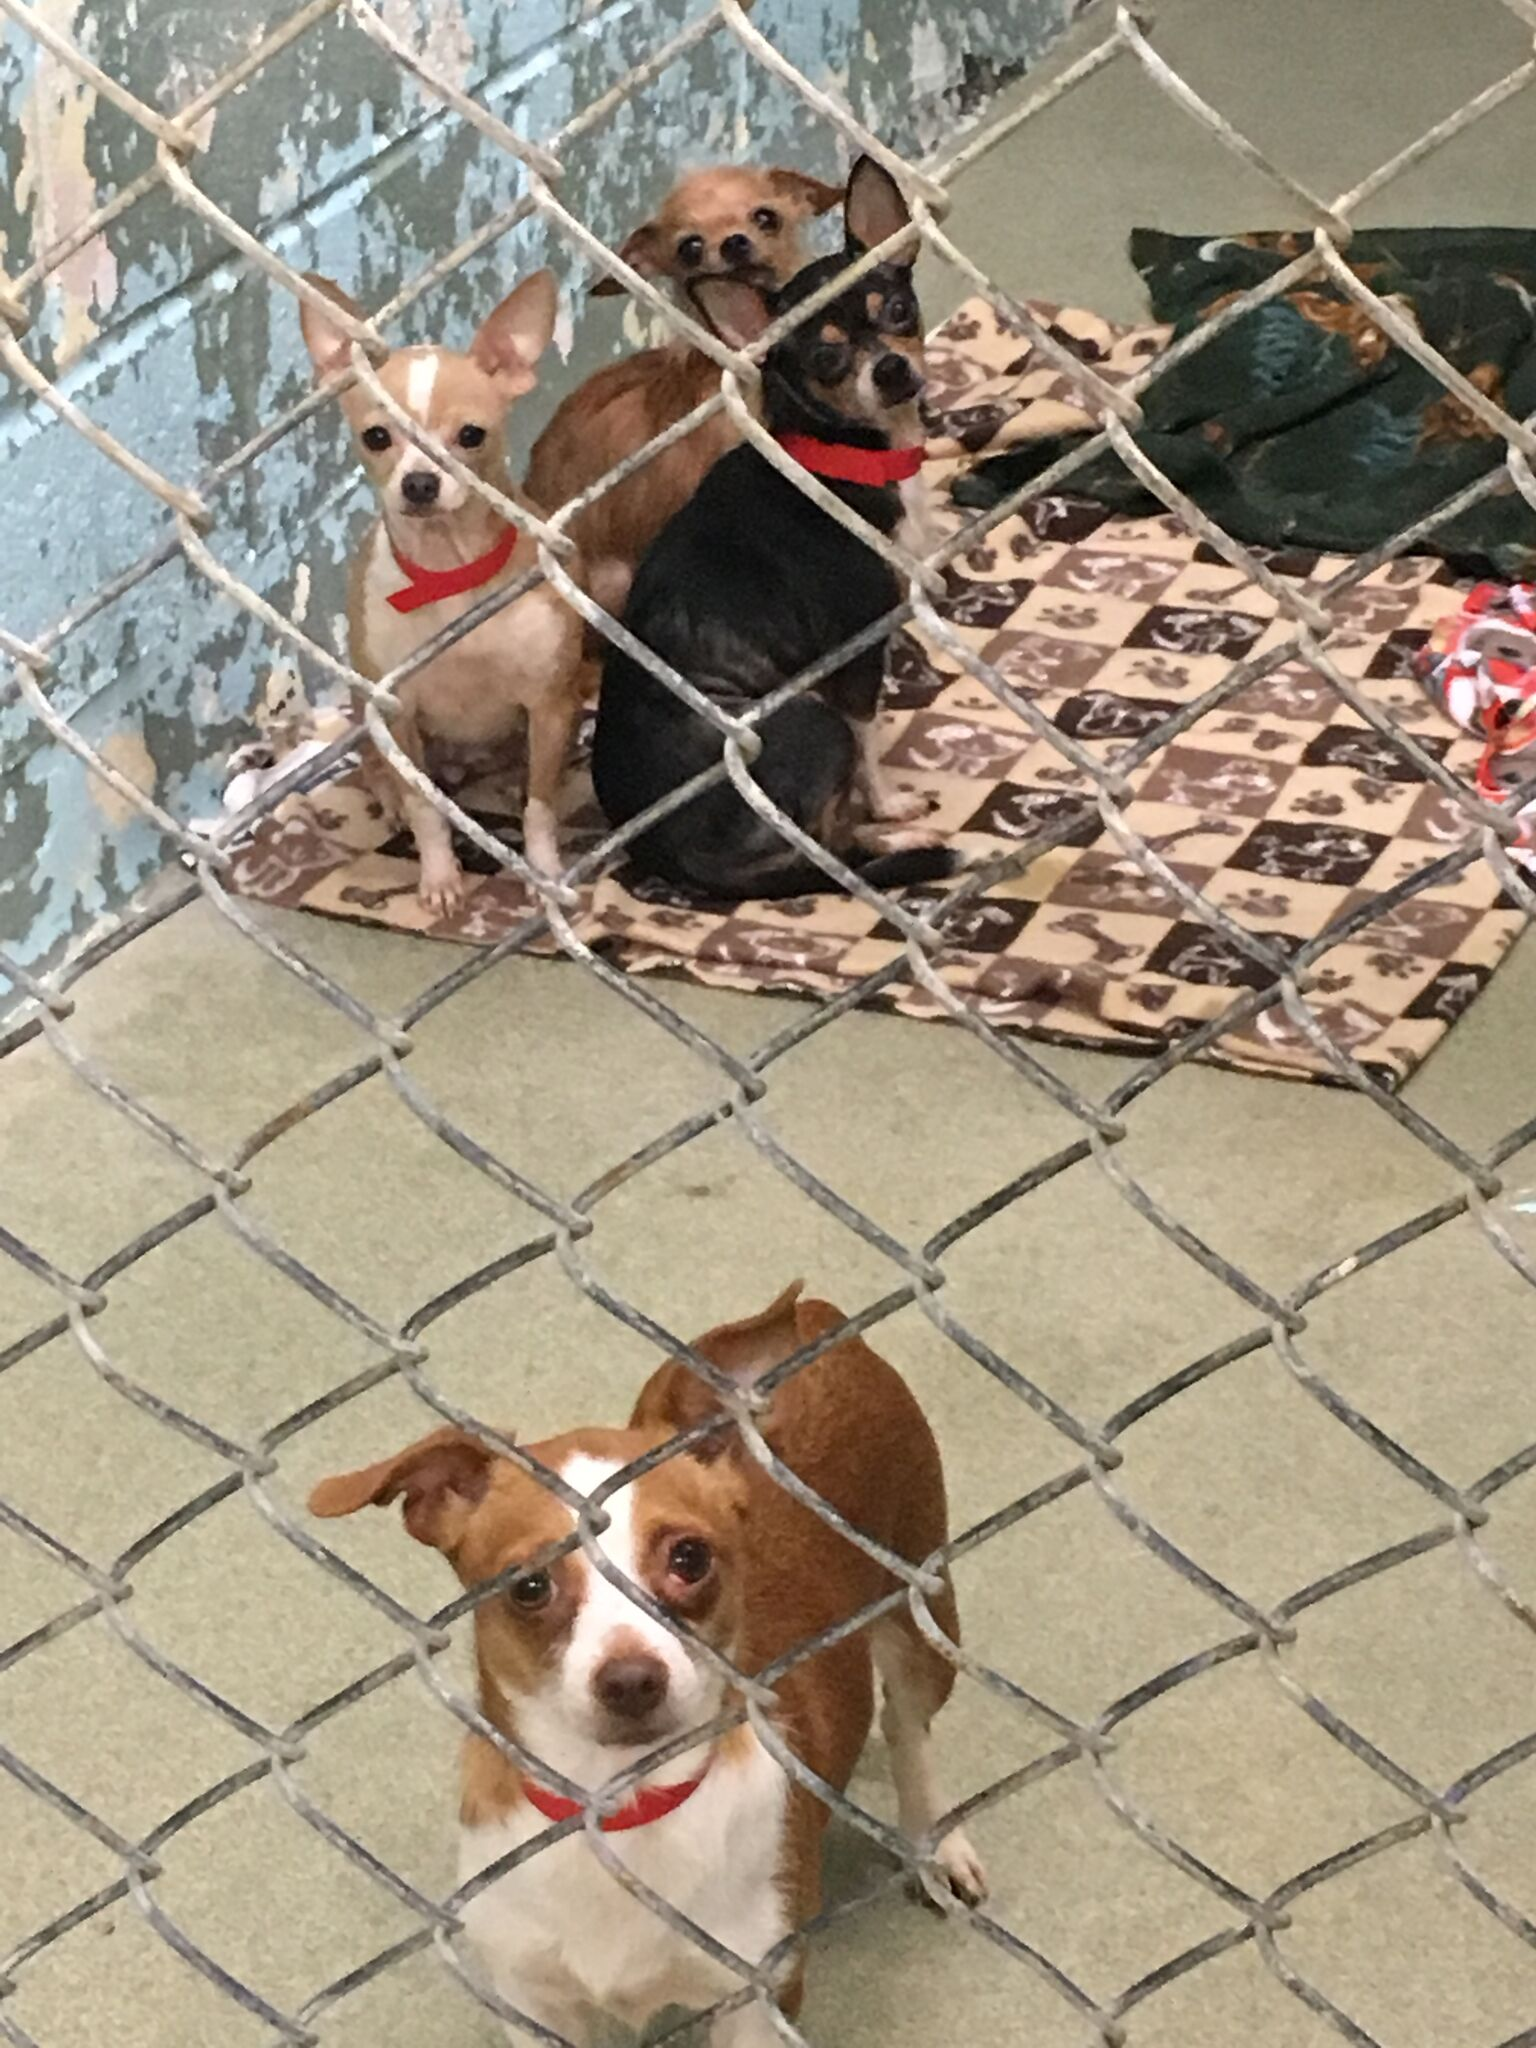 98 small dogs released to Greenhill Humane Society